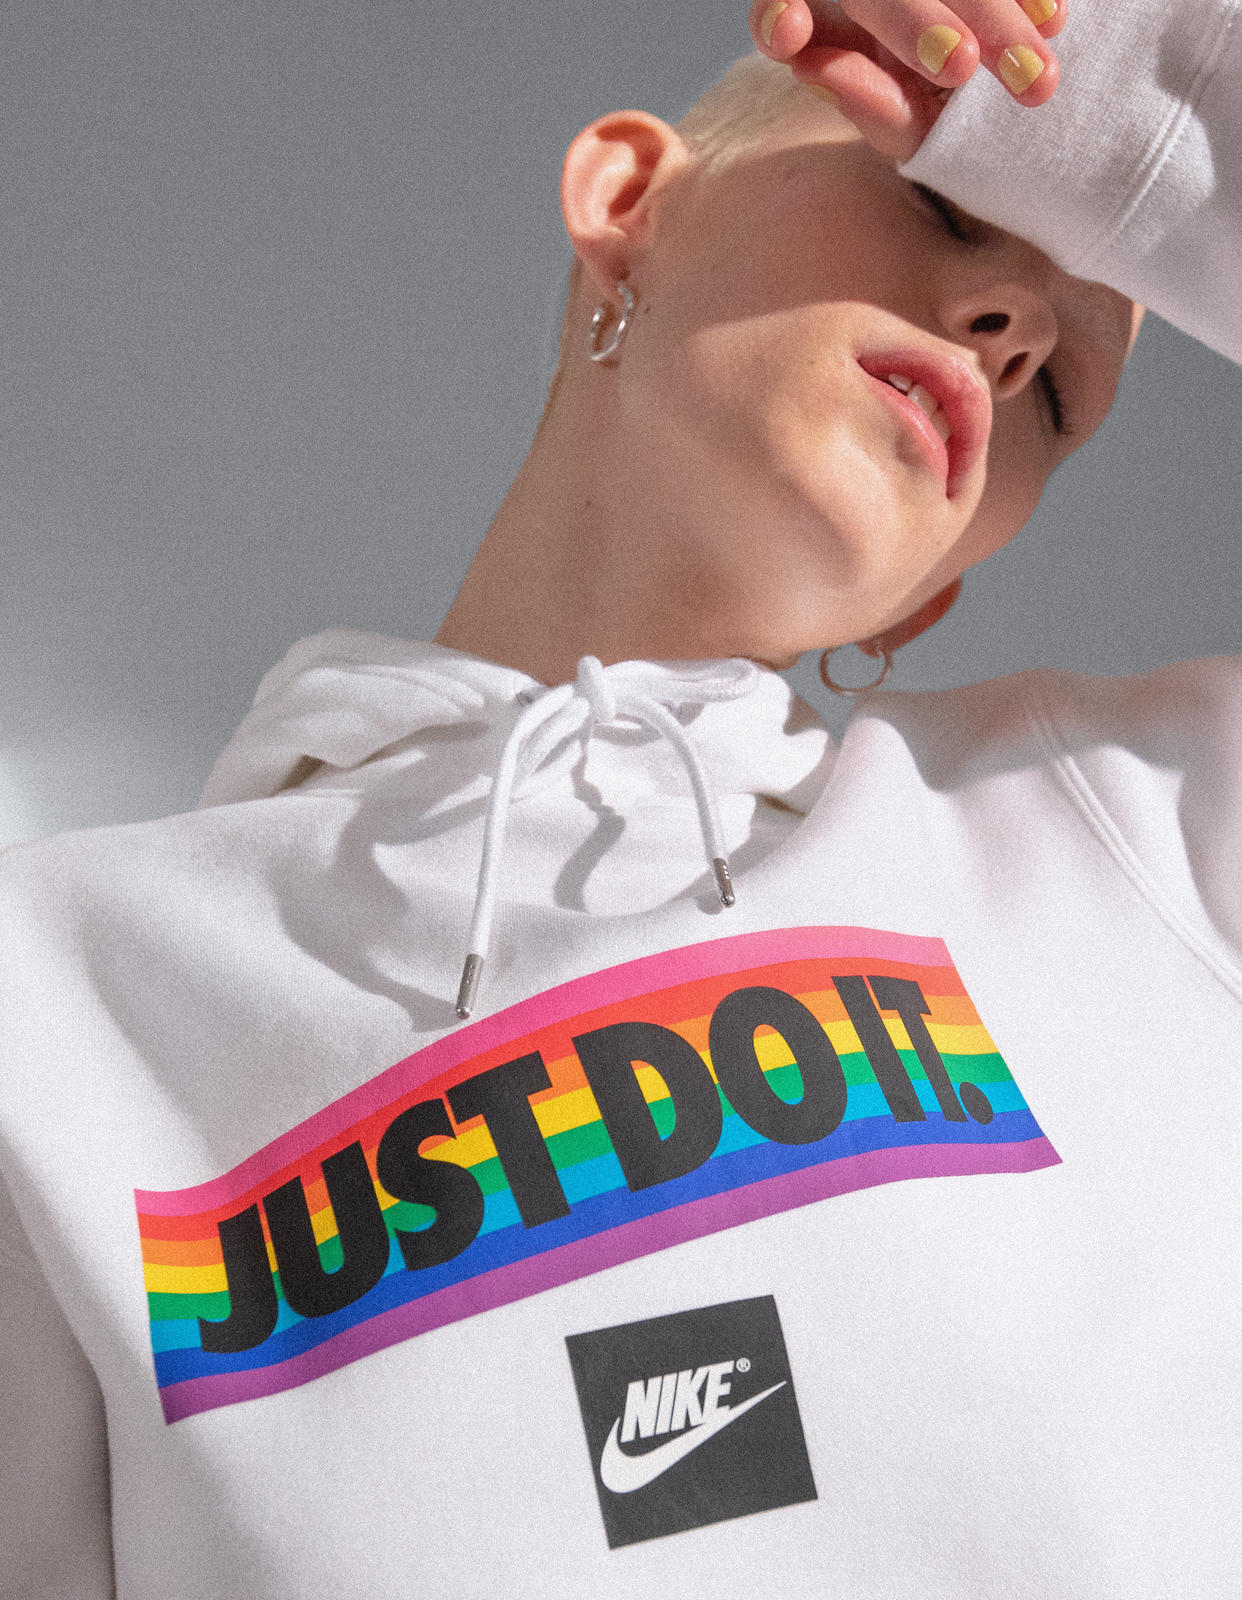 Nike-BETRUE-2019-Collection-15_88113.jpg